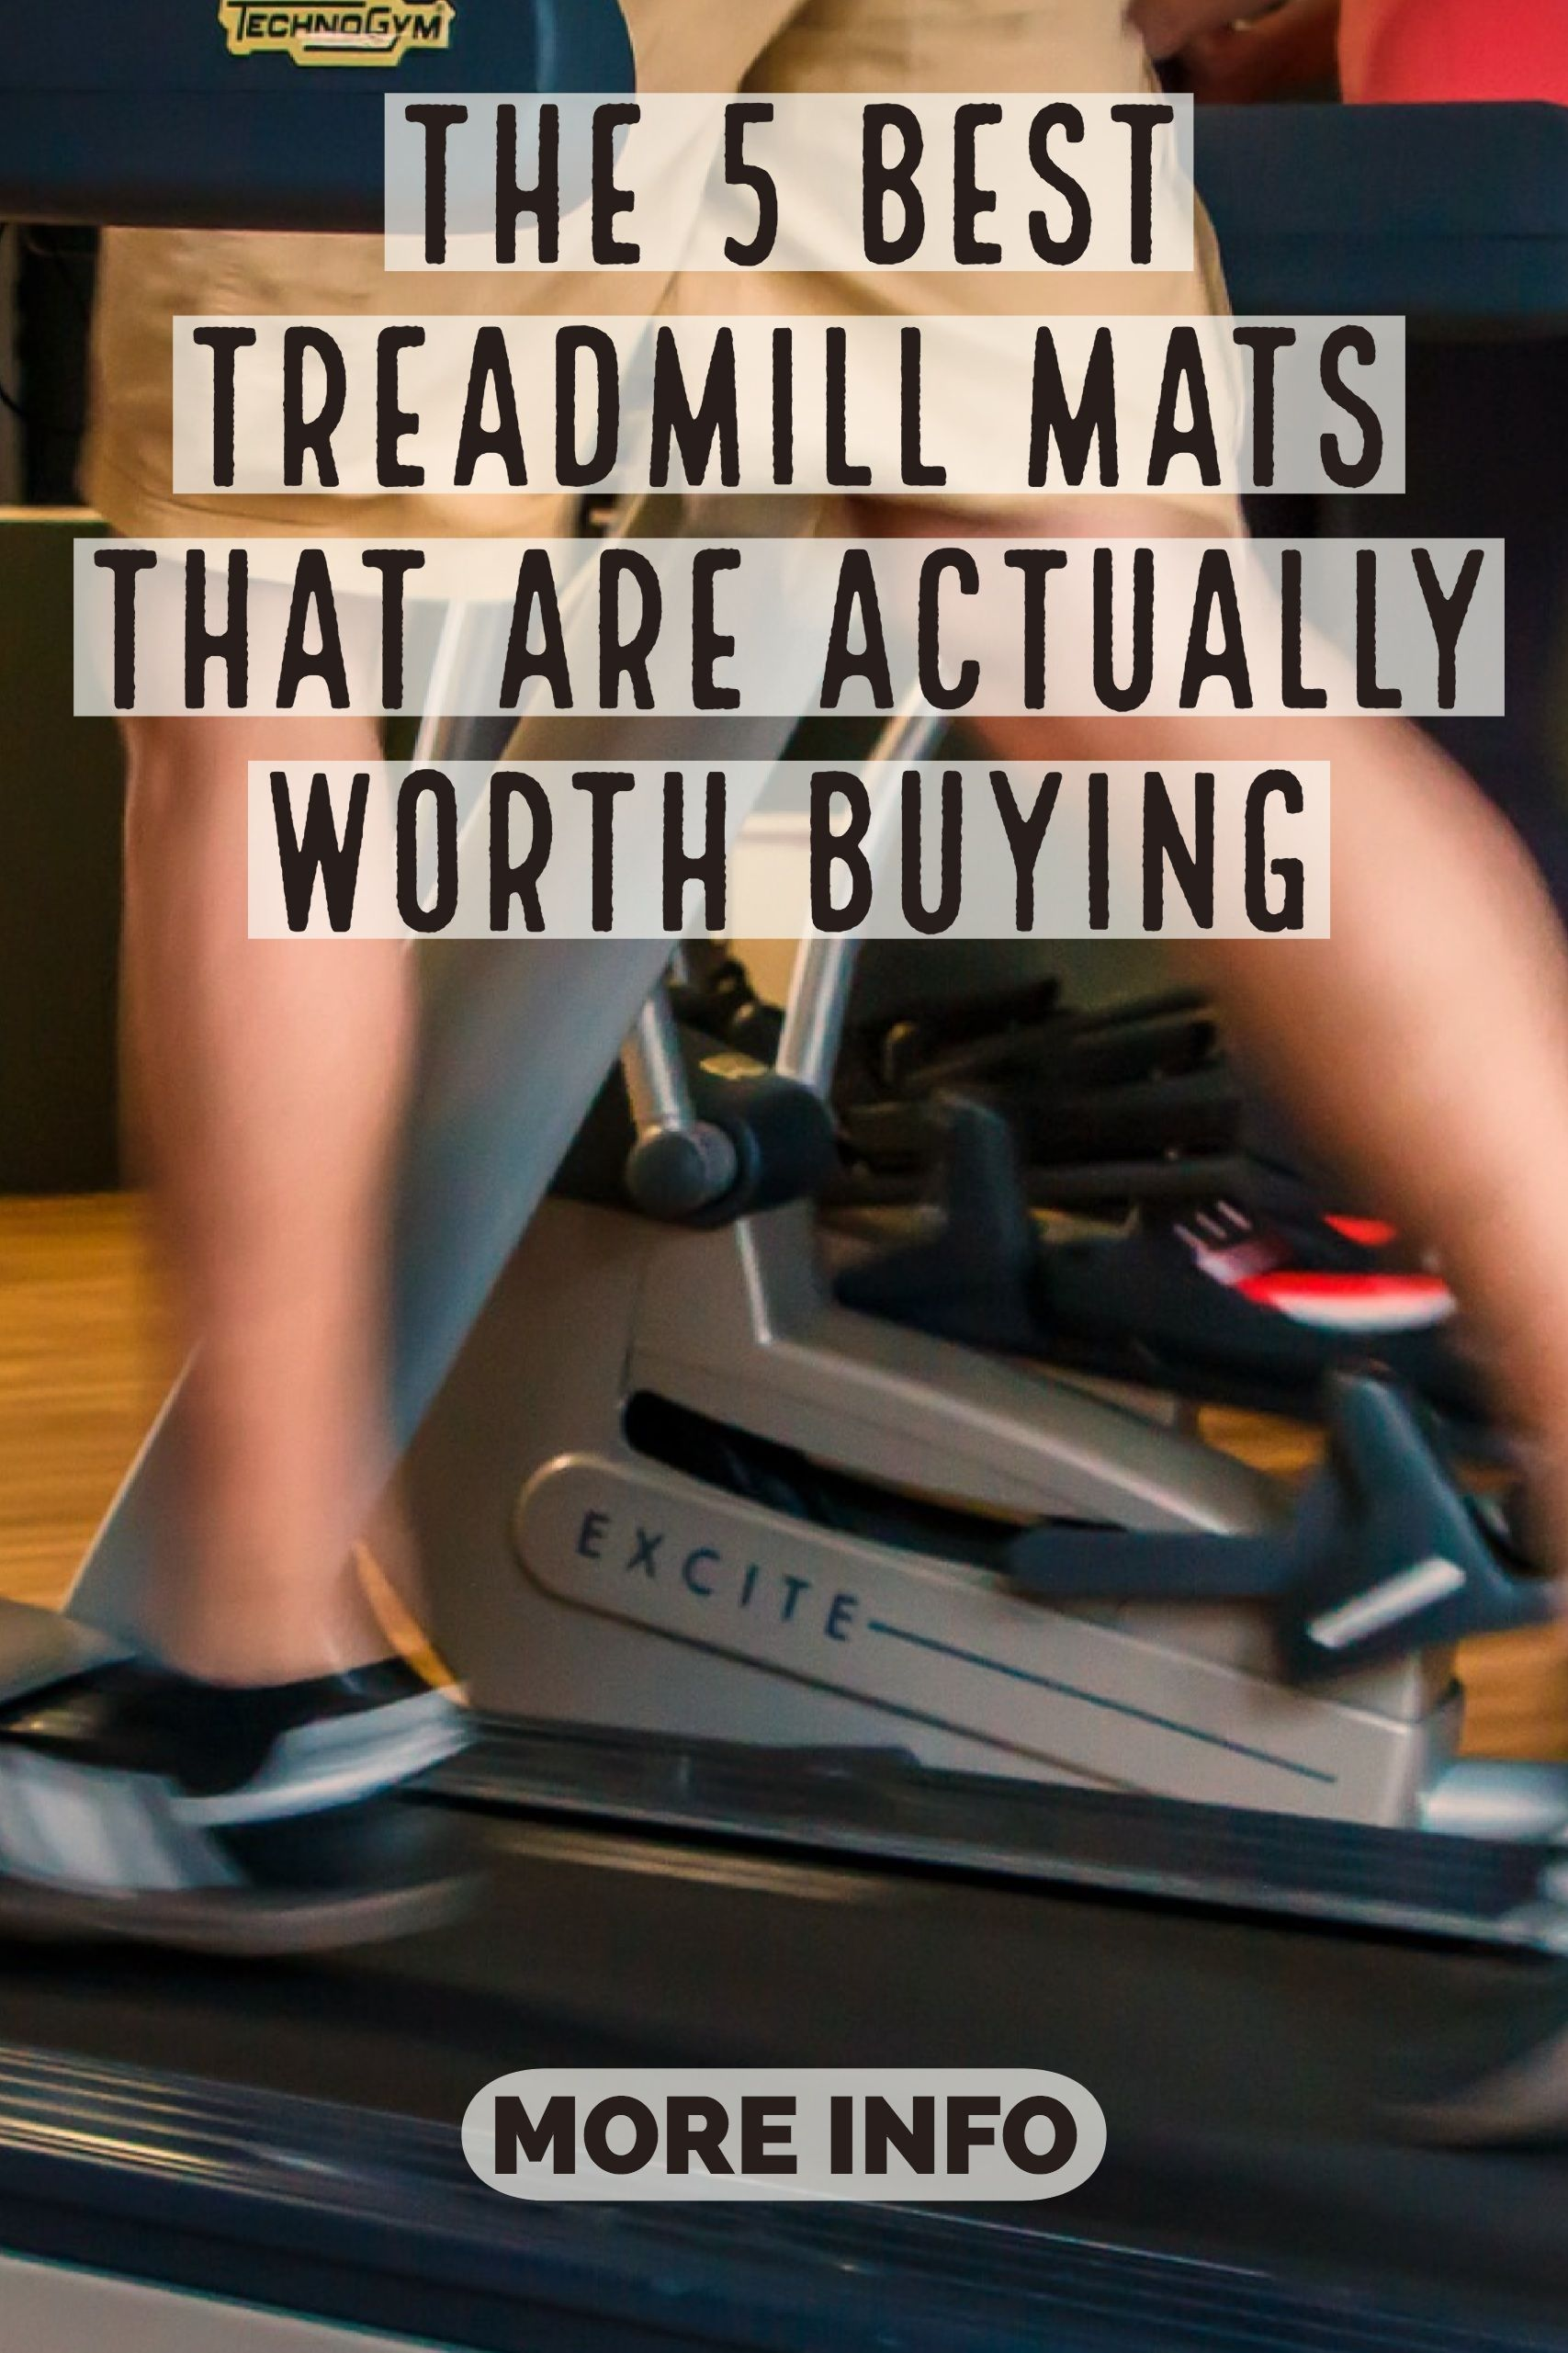 The 5 Best Treadmill Mats For Hardwood